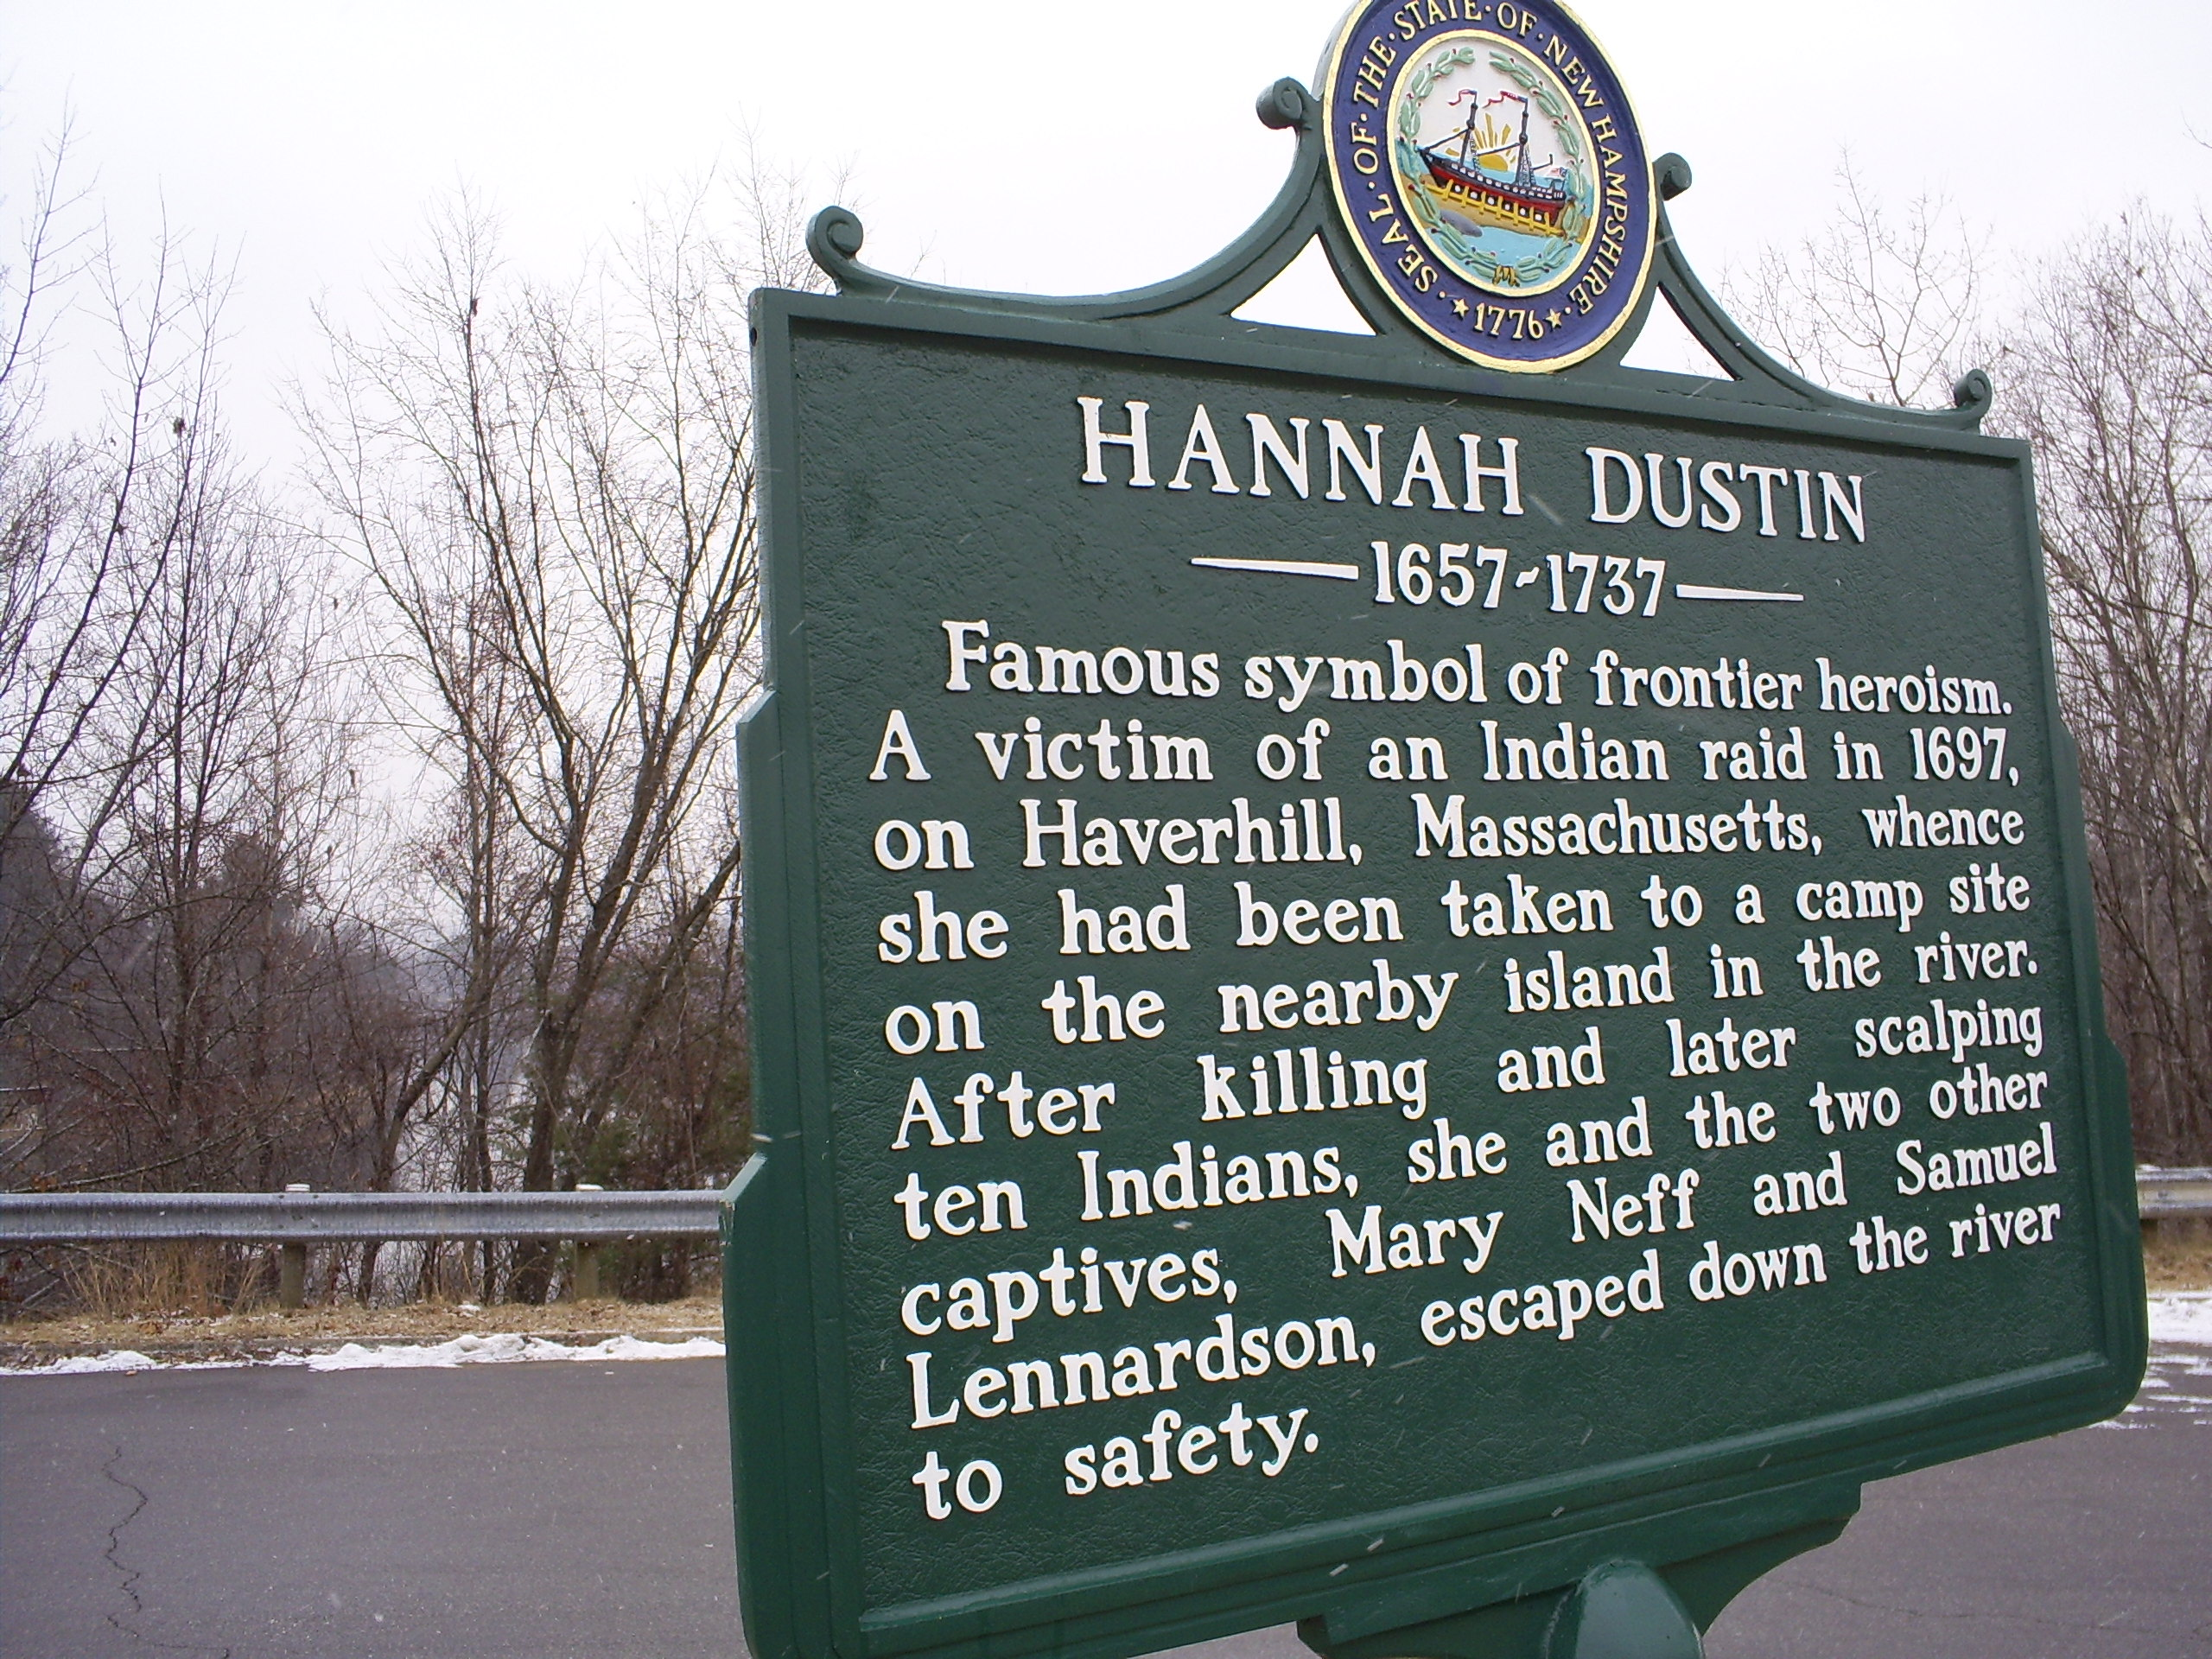 hannah duston biography writer united states of america